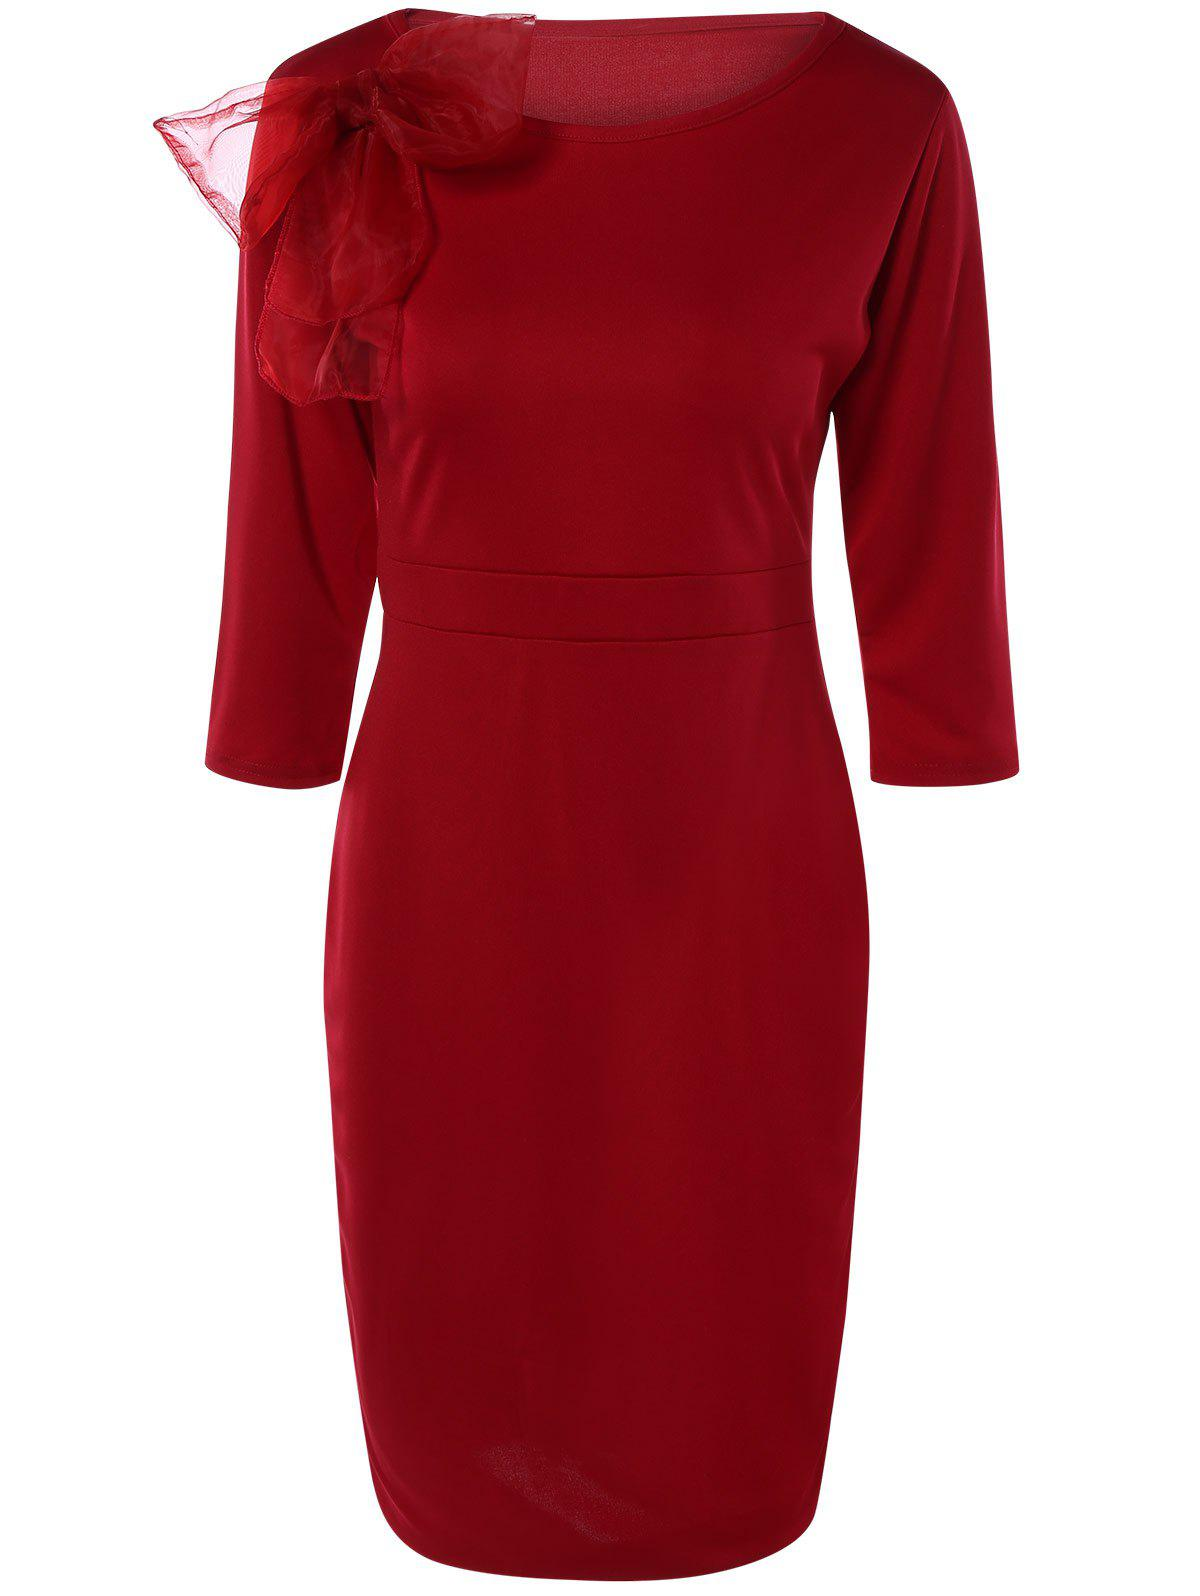 Chic Bowknot Embellished Solid Color Skinny Women's Dress - RED 2XL